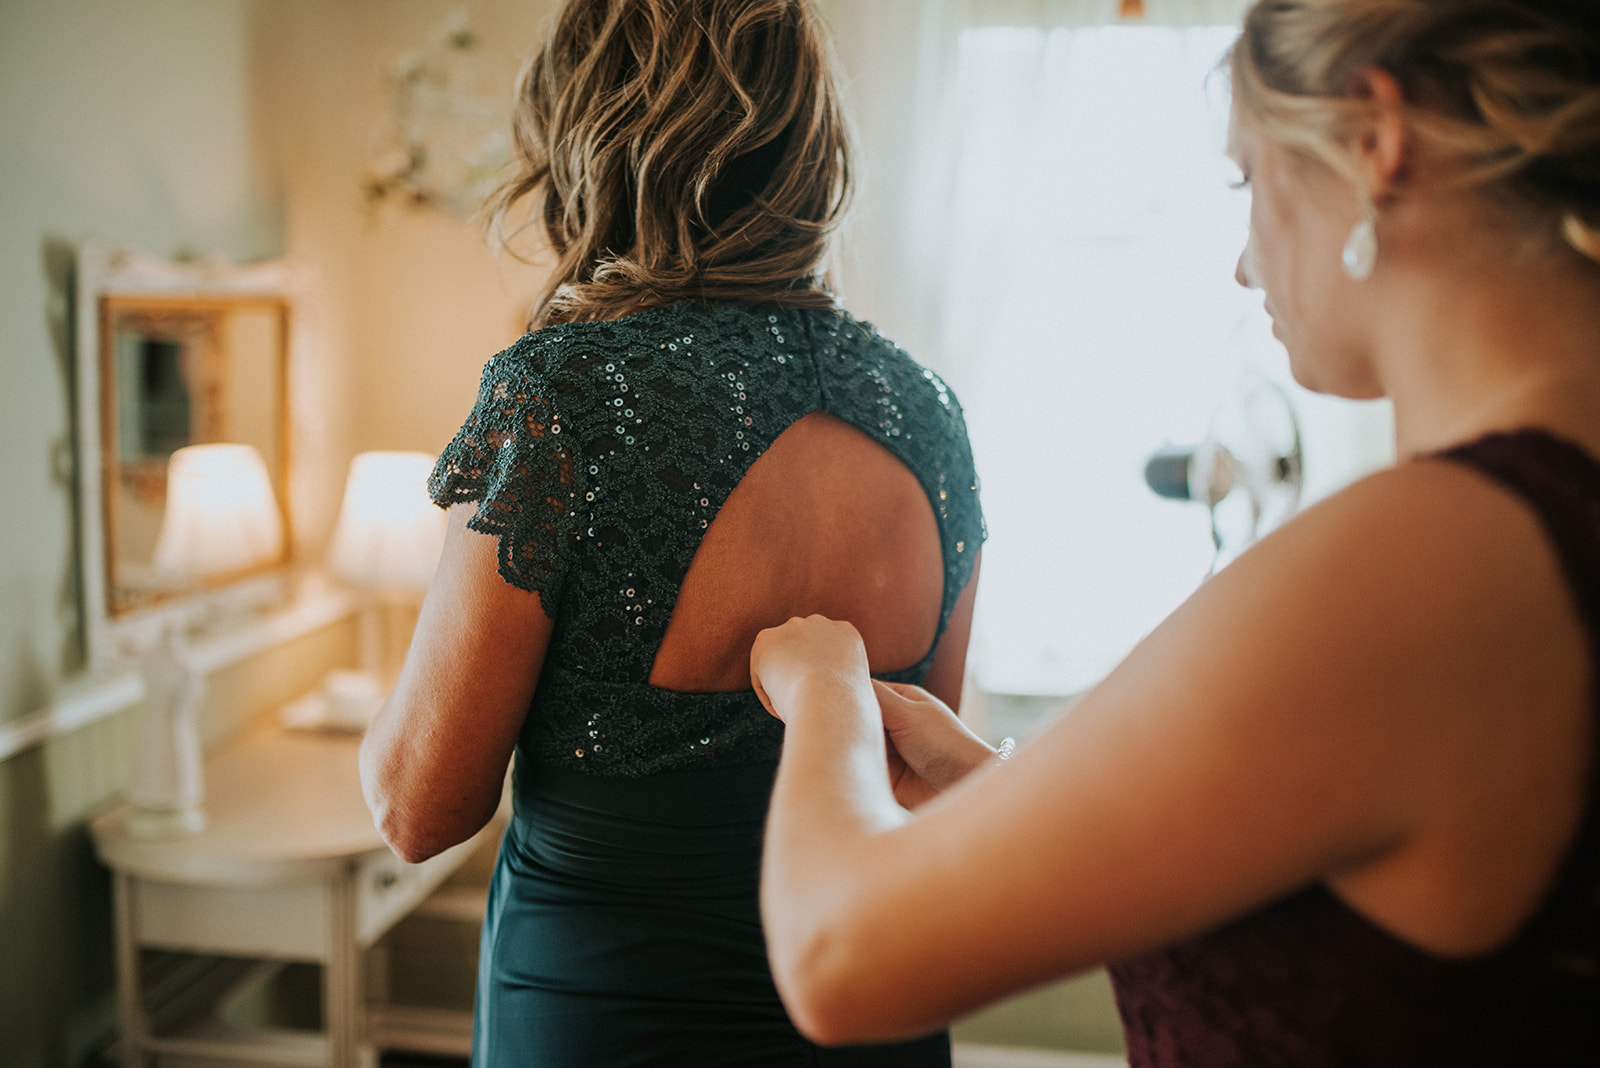 overthevineswisconsinwedding_0389.jpg